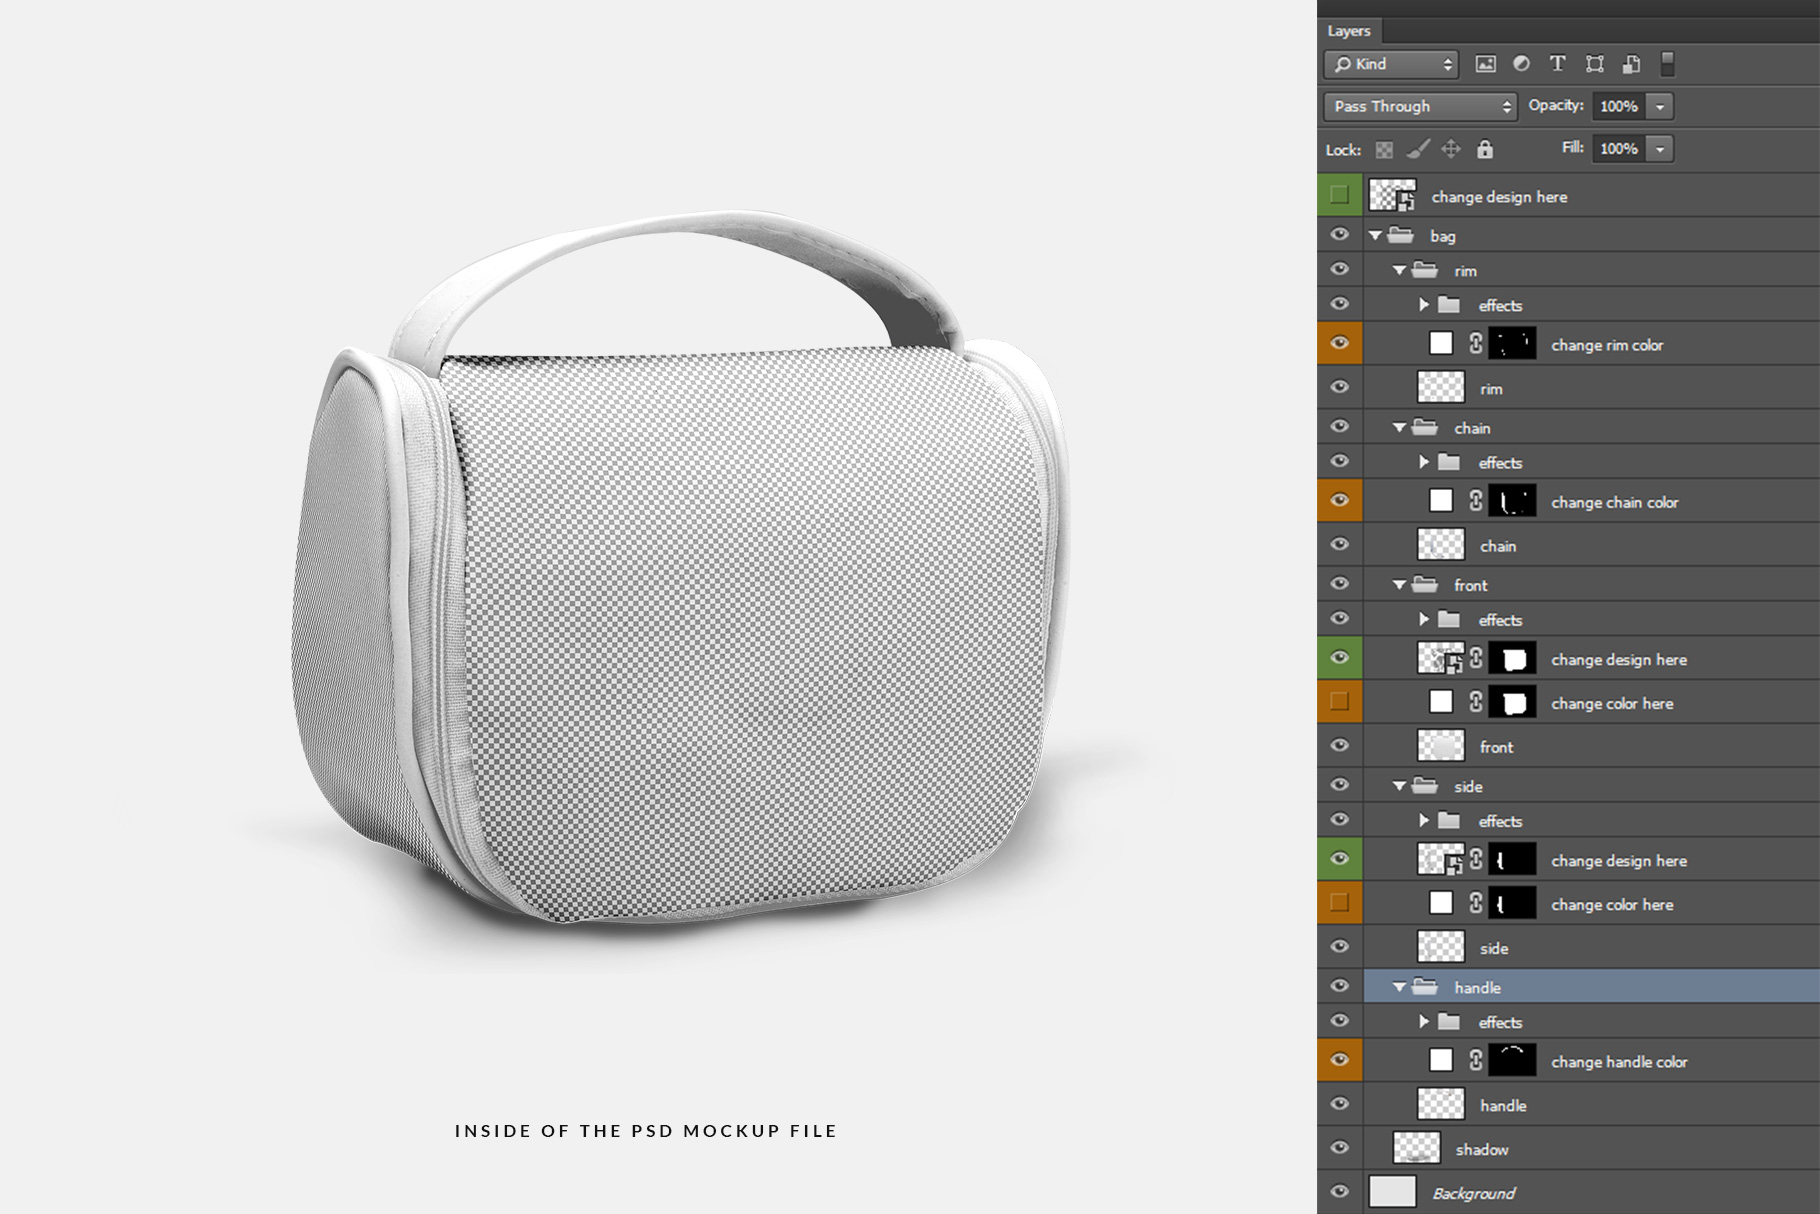 inside of the psd file of the travel cosmetic bag mockup